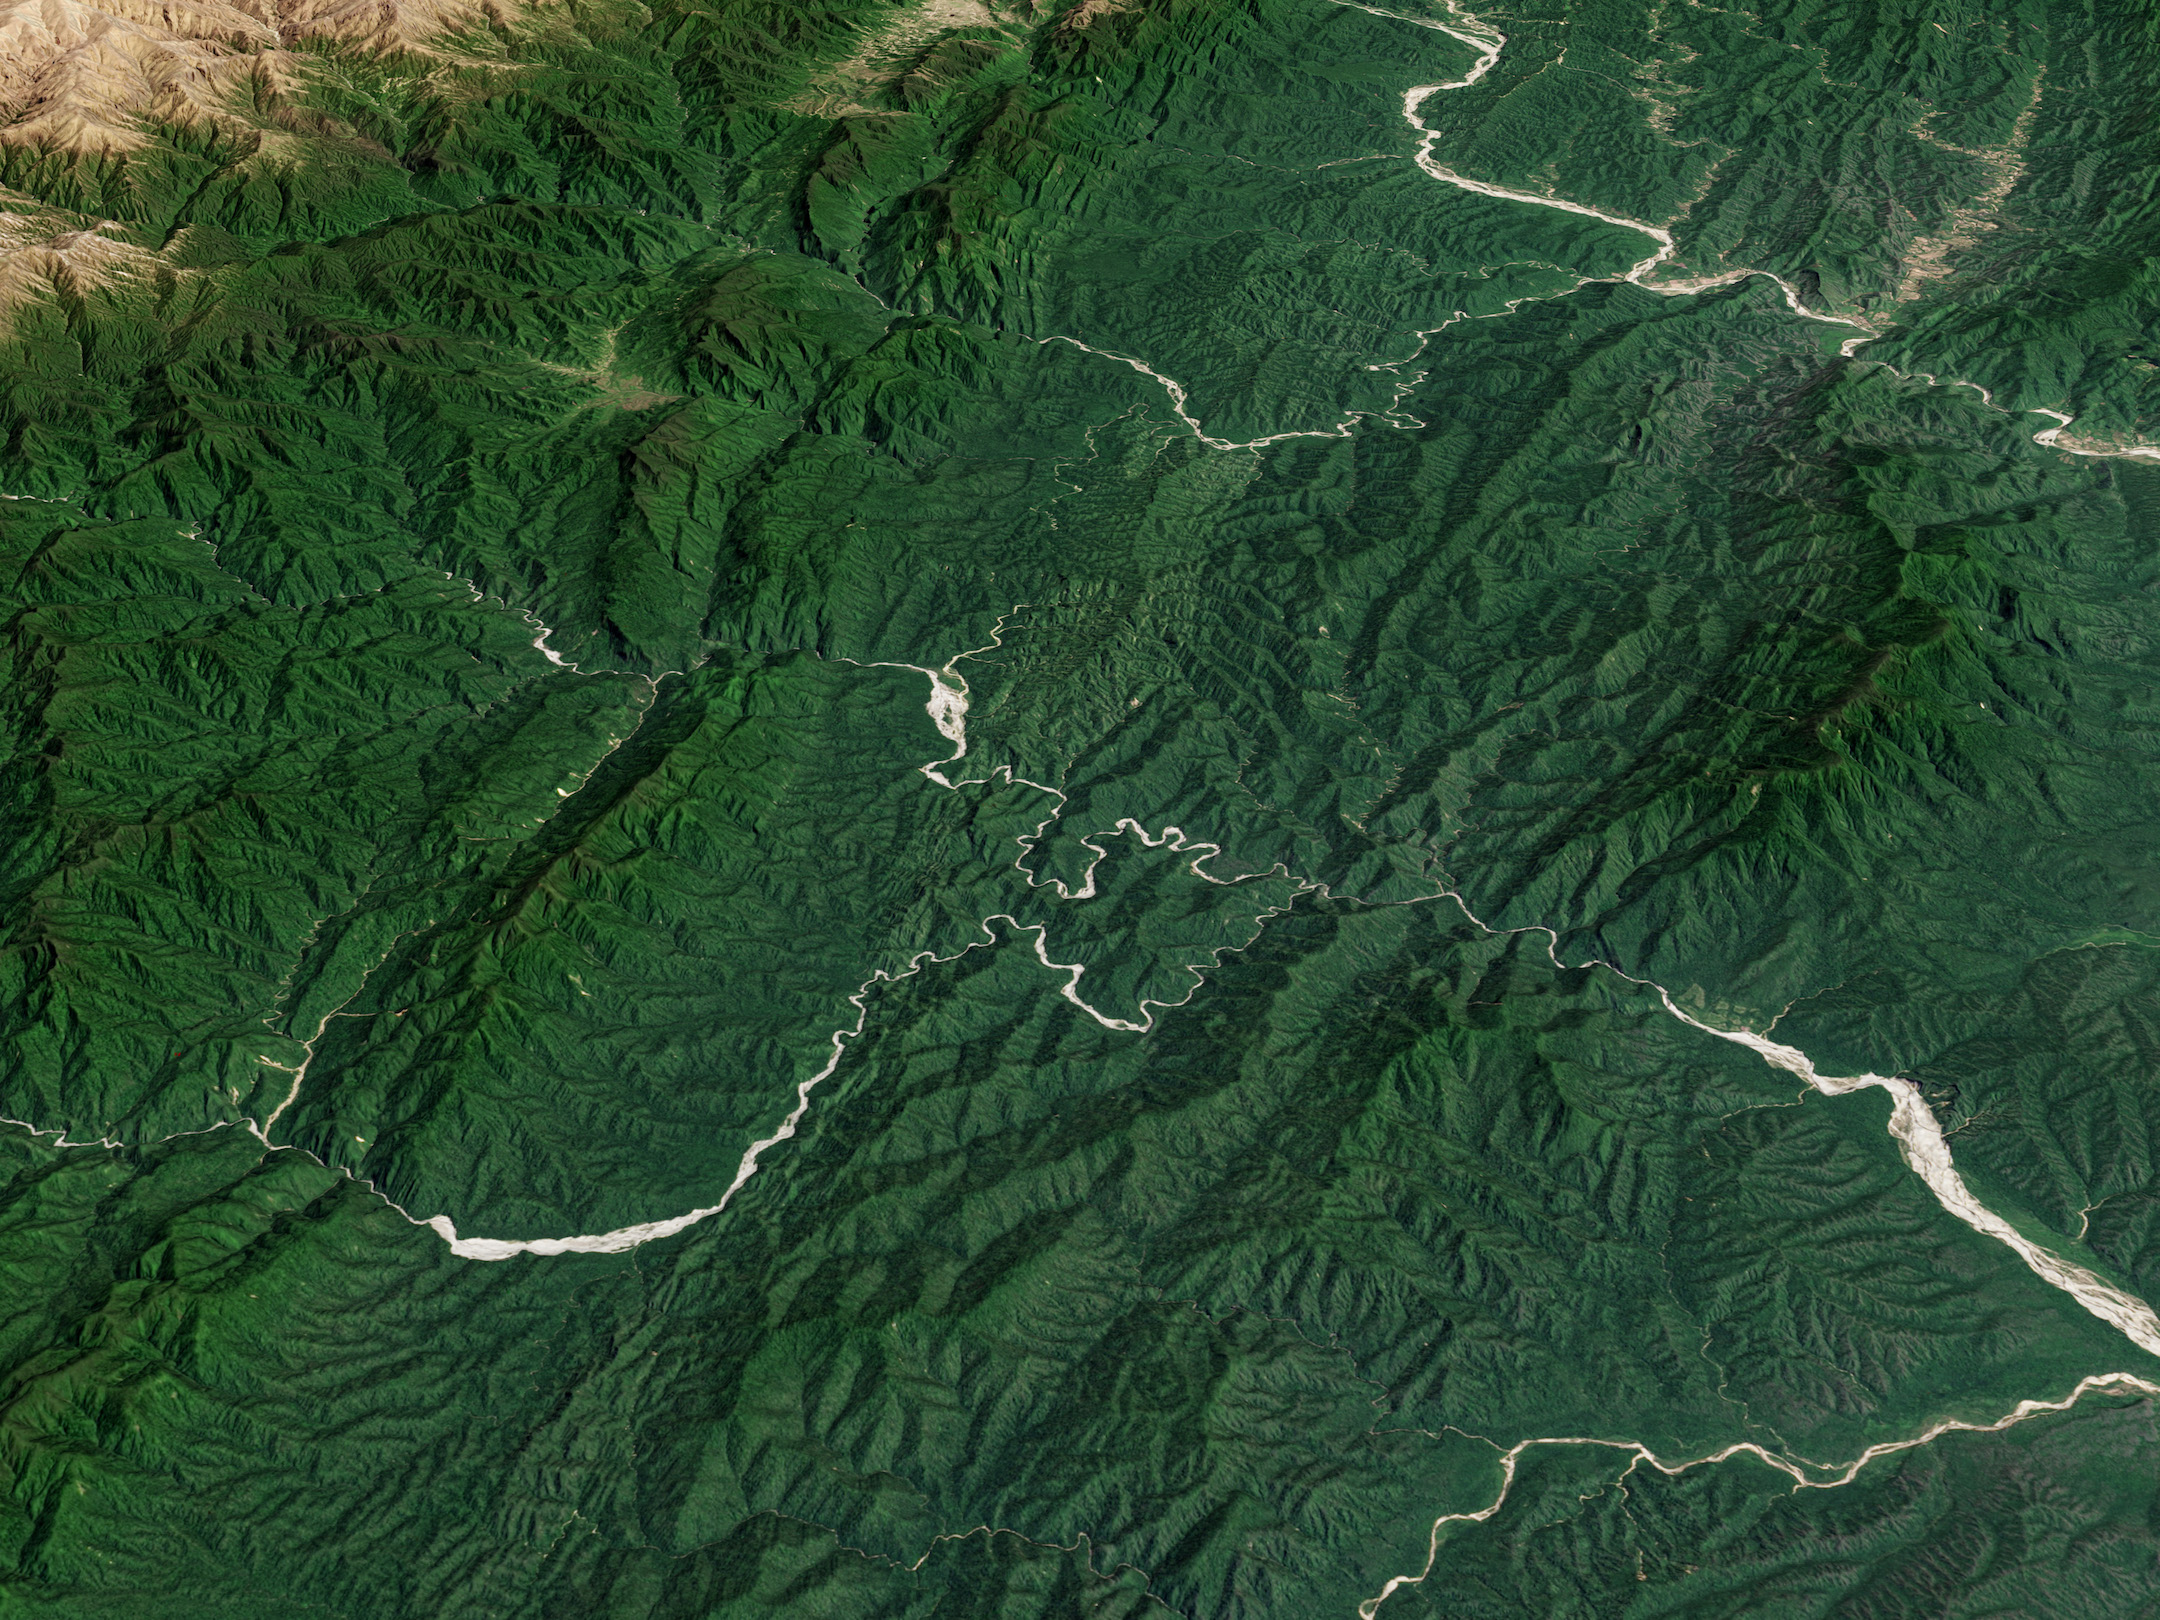 Today's Image of the Day comes thanks to the NASA Earth Observatory and features a look at the Baritú National Park in Argentina.